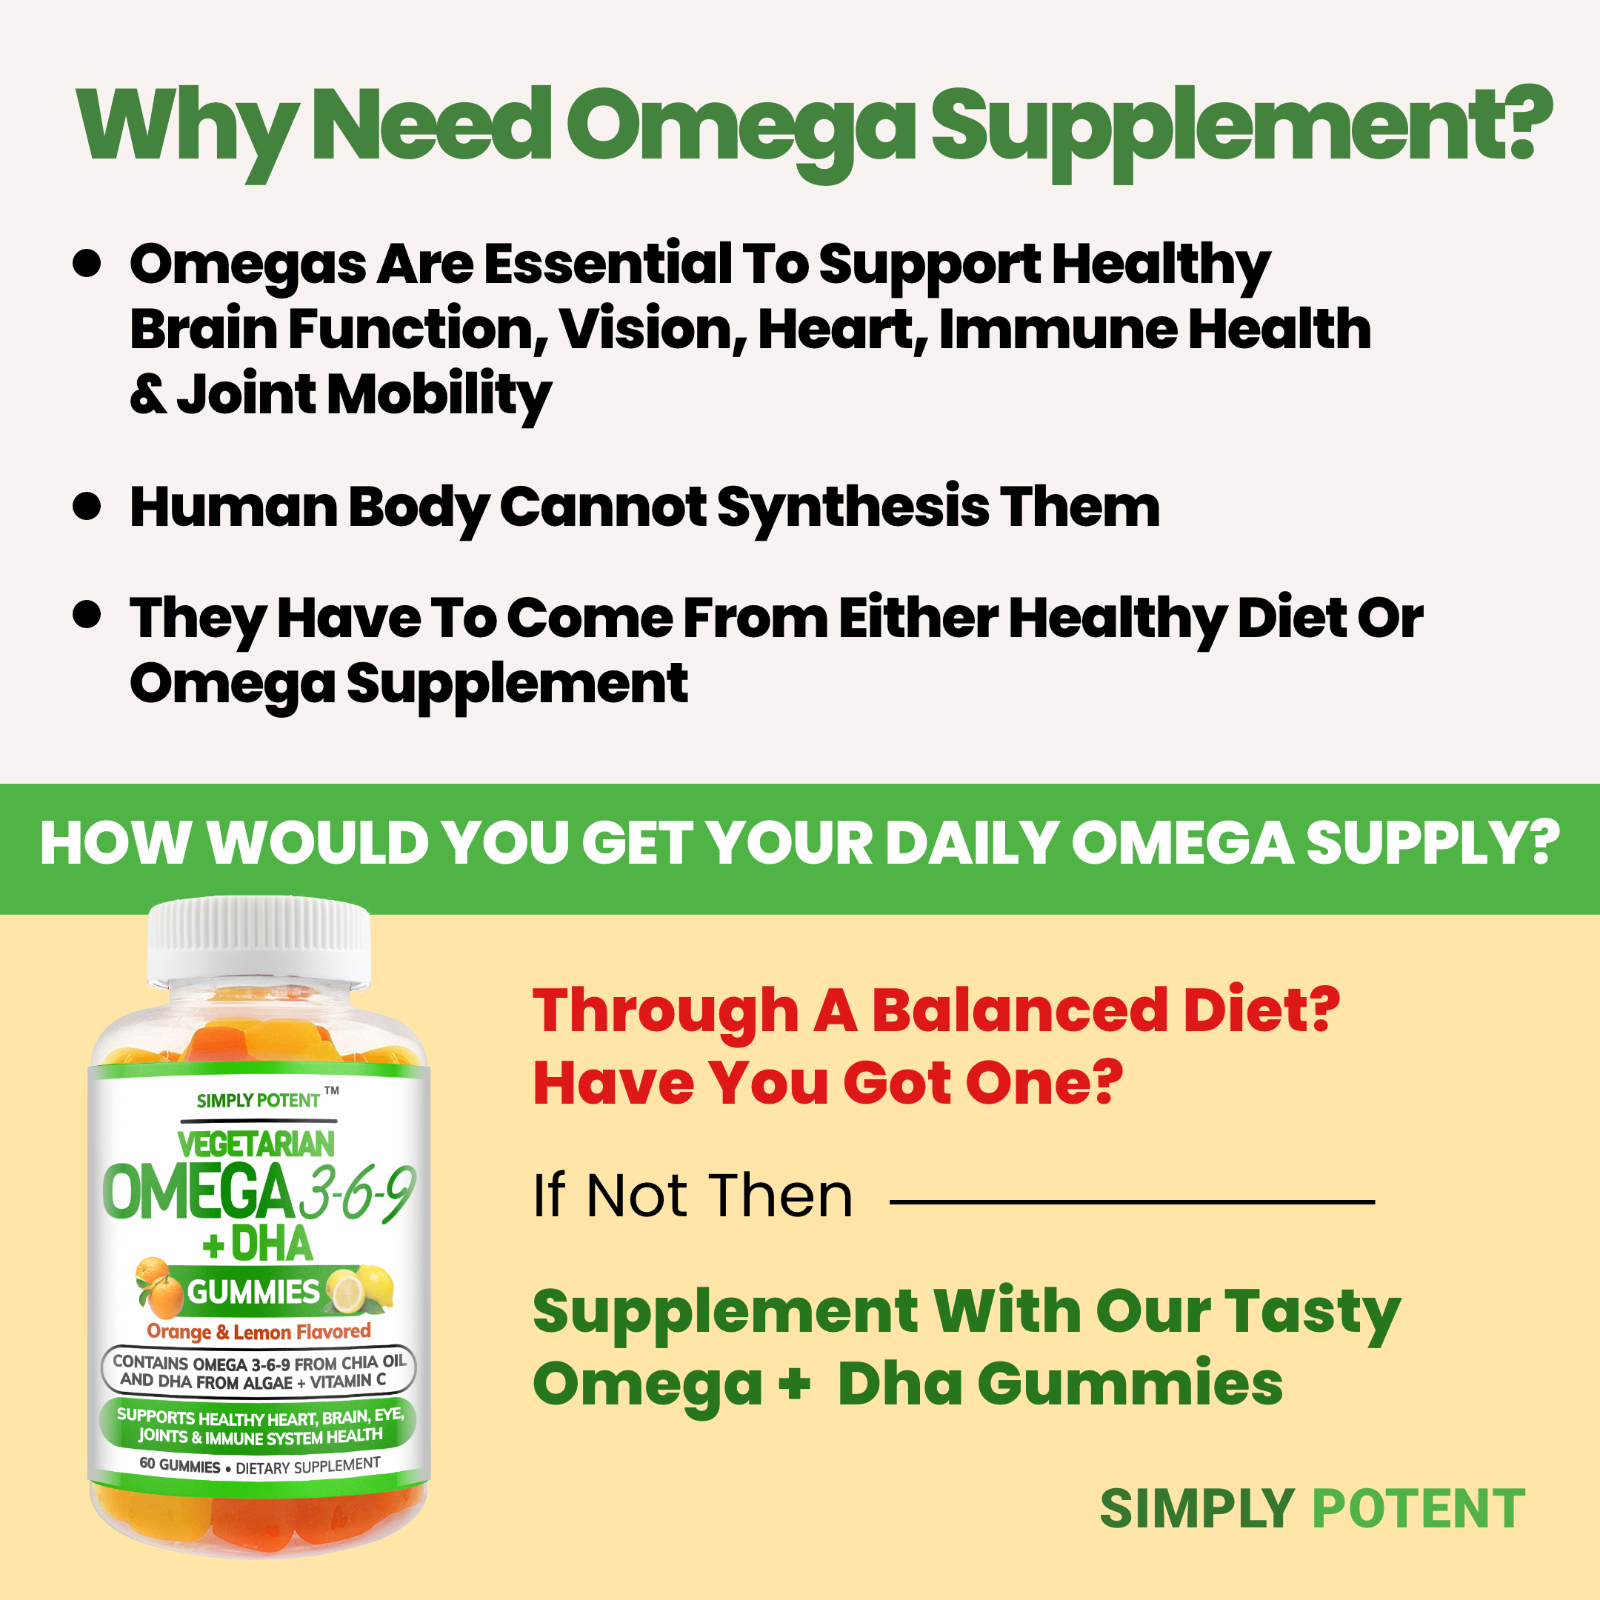 Omega 3 6 9 + DHA + Vitamin C Fish-Free Gummies for Brain, Heart, Joint Support 2